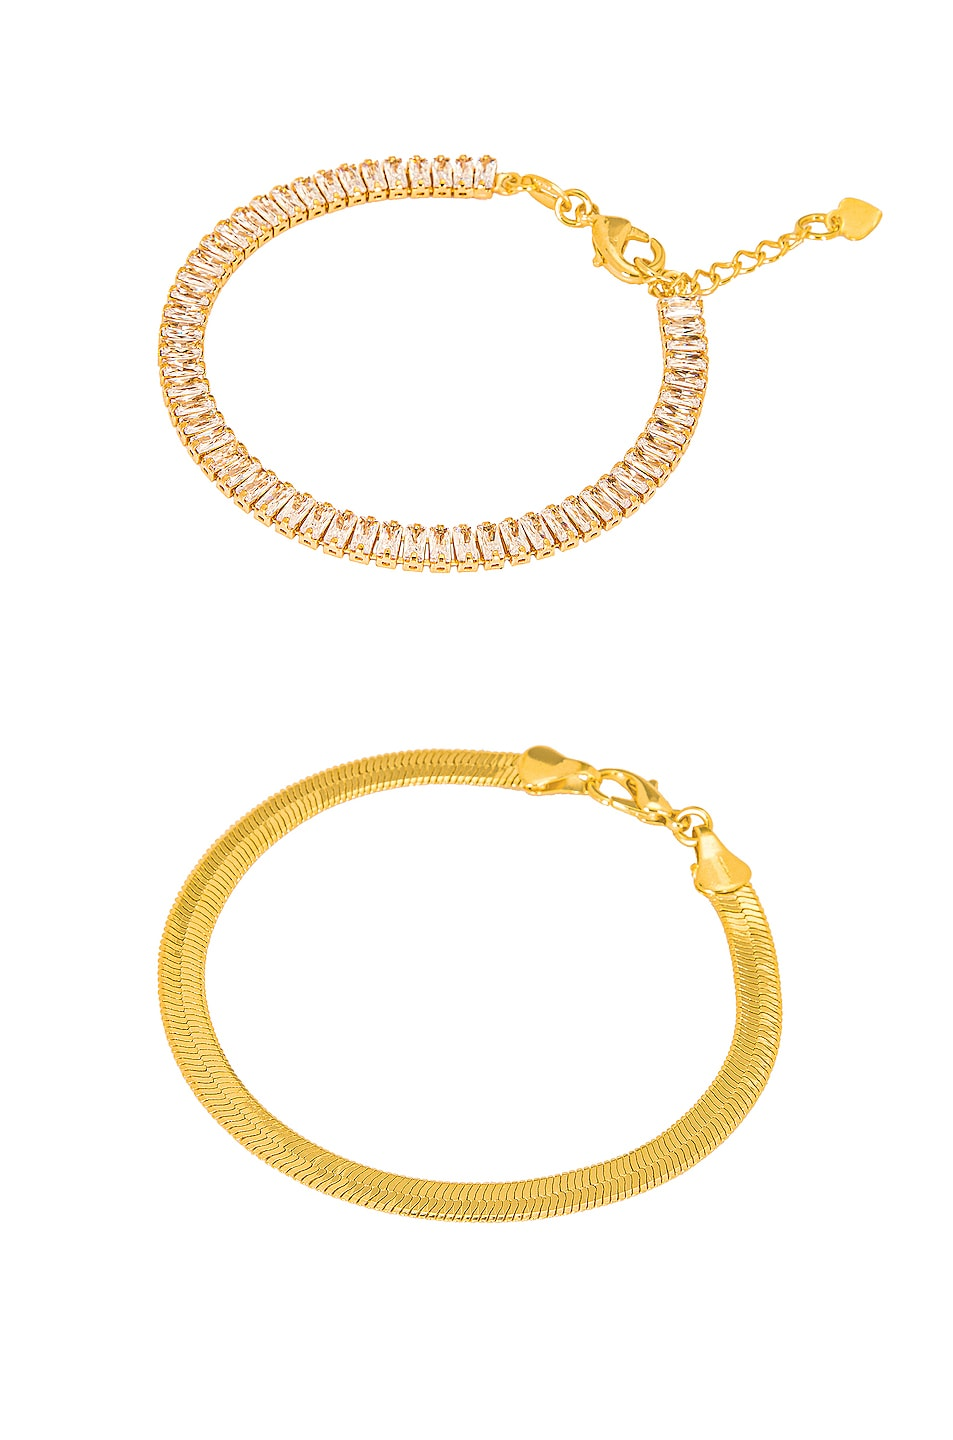 Image 1 of Jordan Road Jewelry for FWRD Cosmo Bracelet Stack in Gold